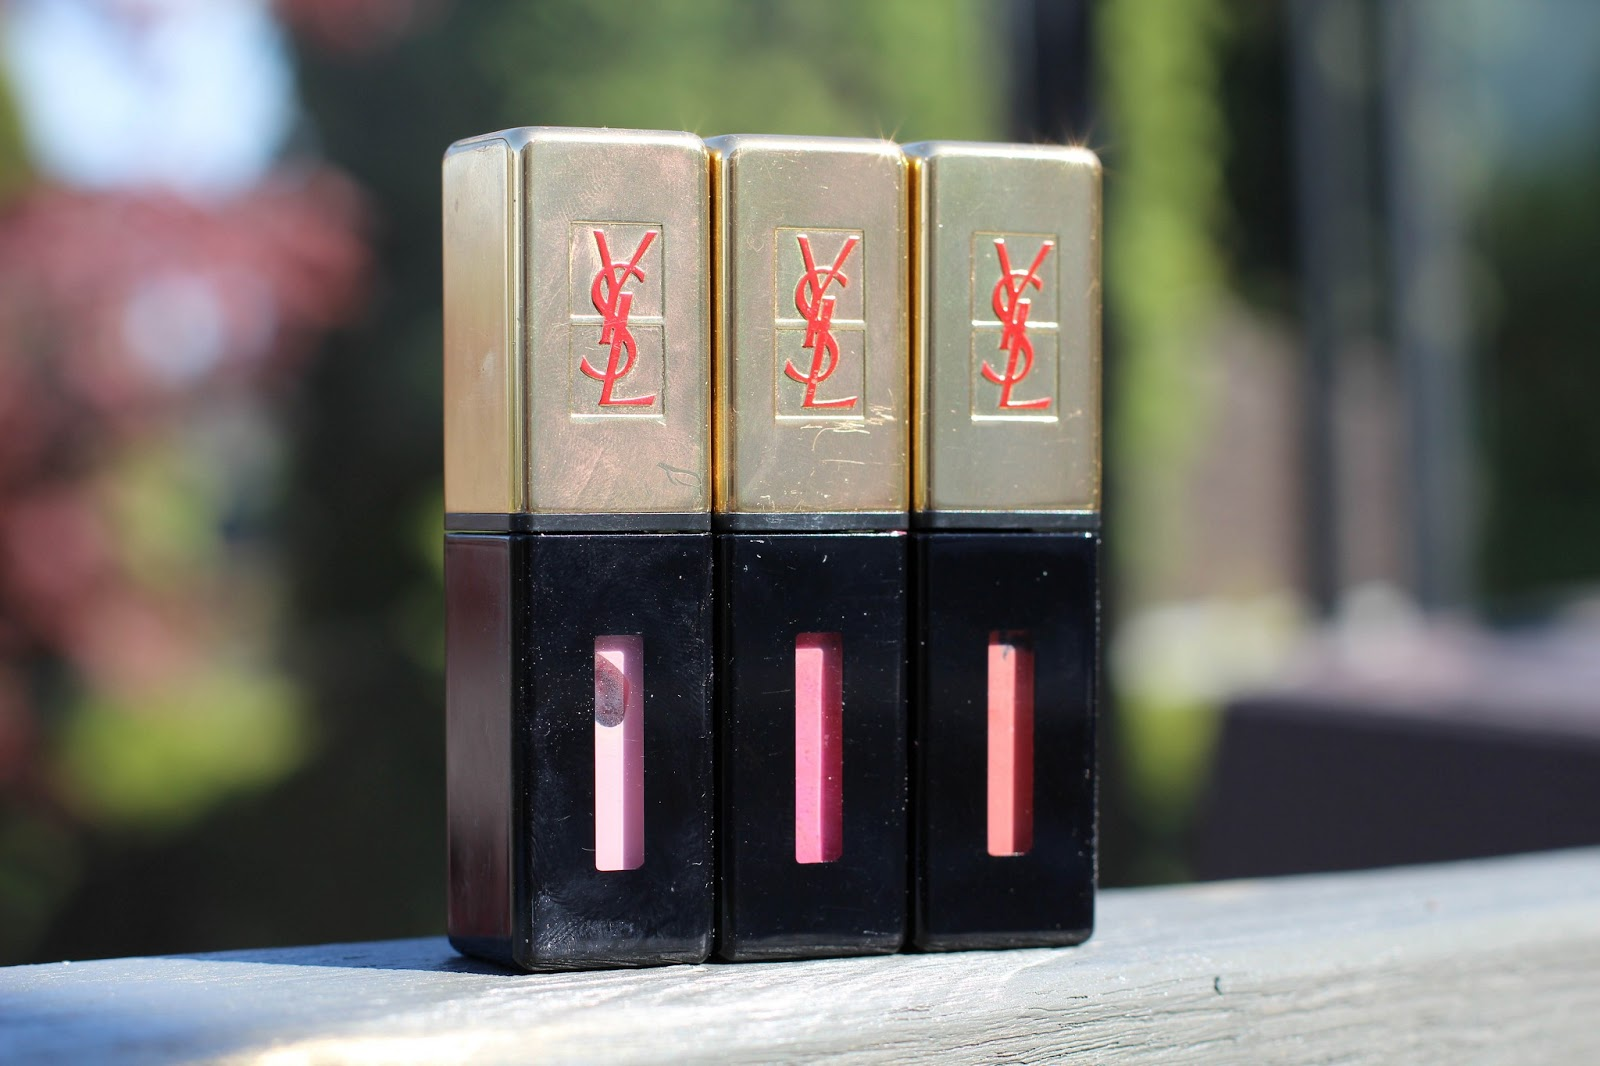 Yves Saint Laurent Glossy Stain Vs L Oreal Colour Caress